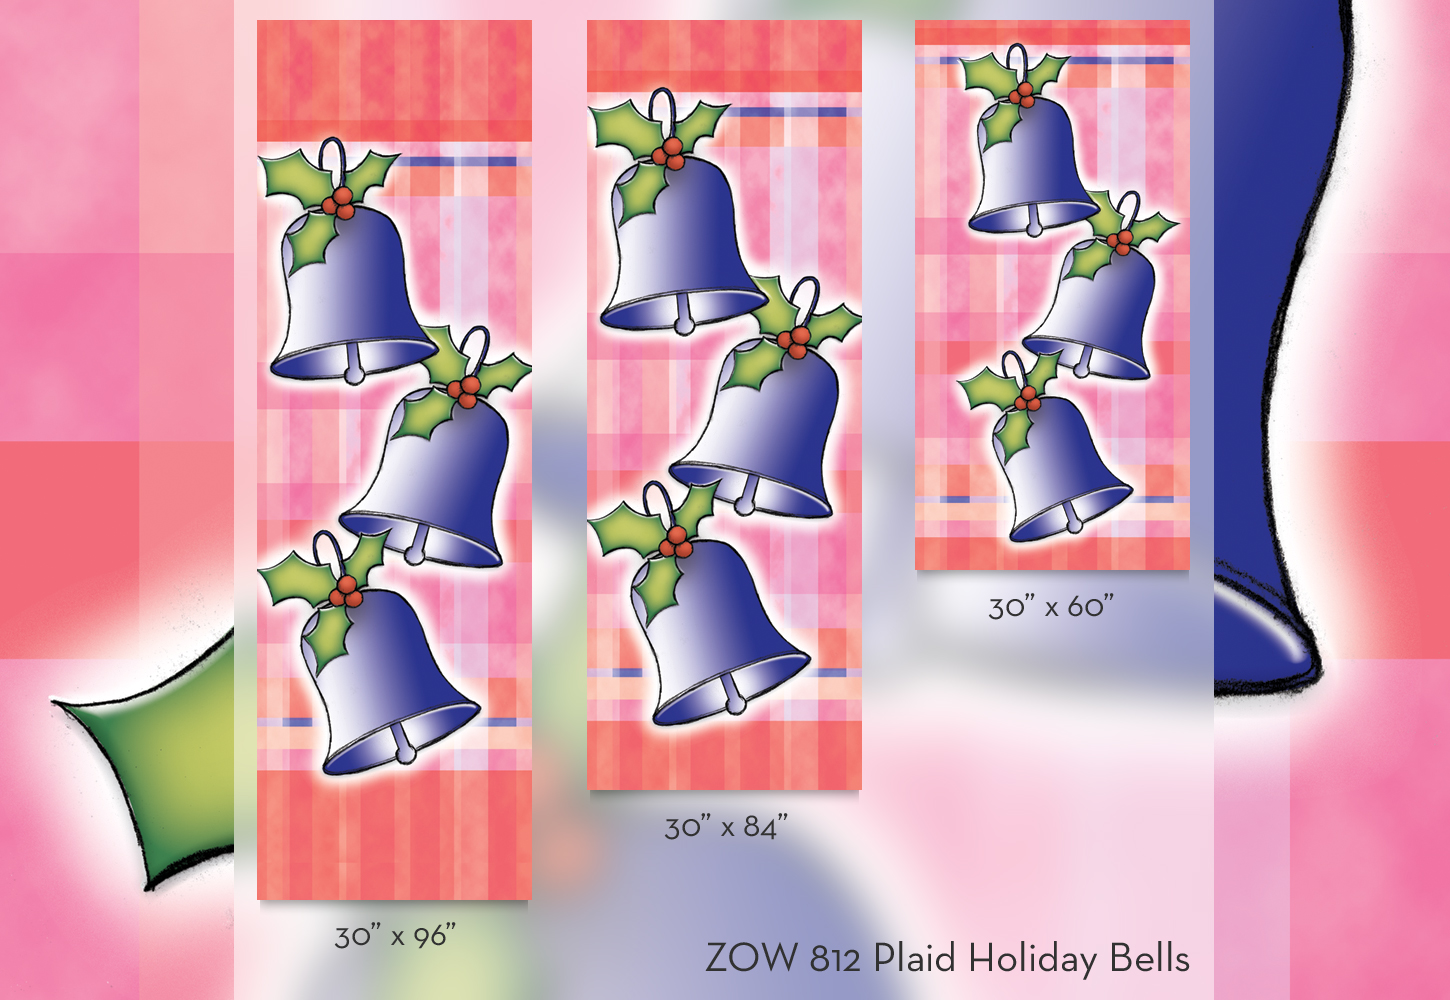 ZOW 812 Plaid Holiday Bells